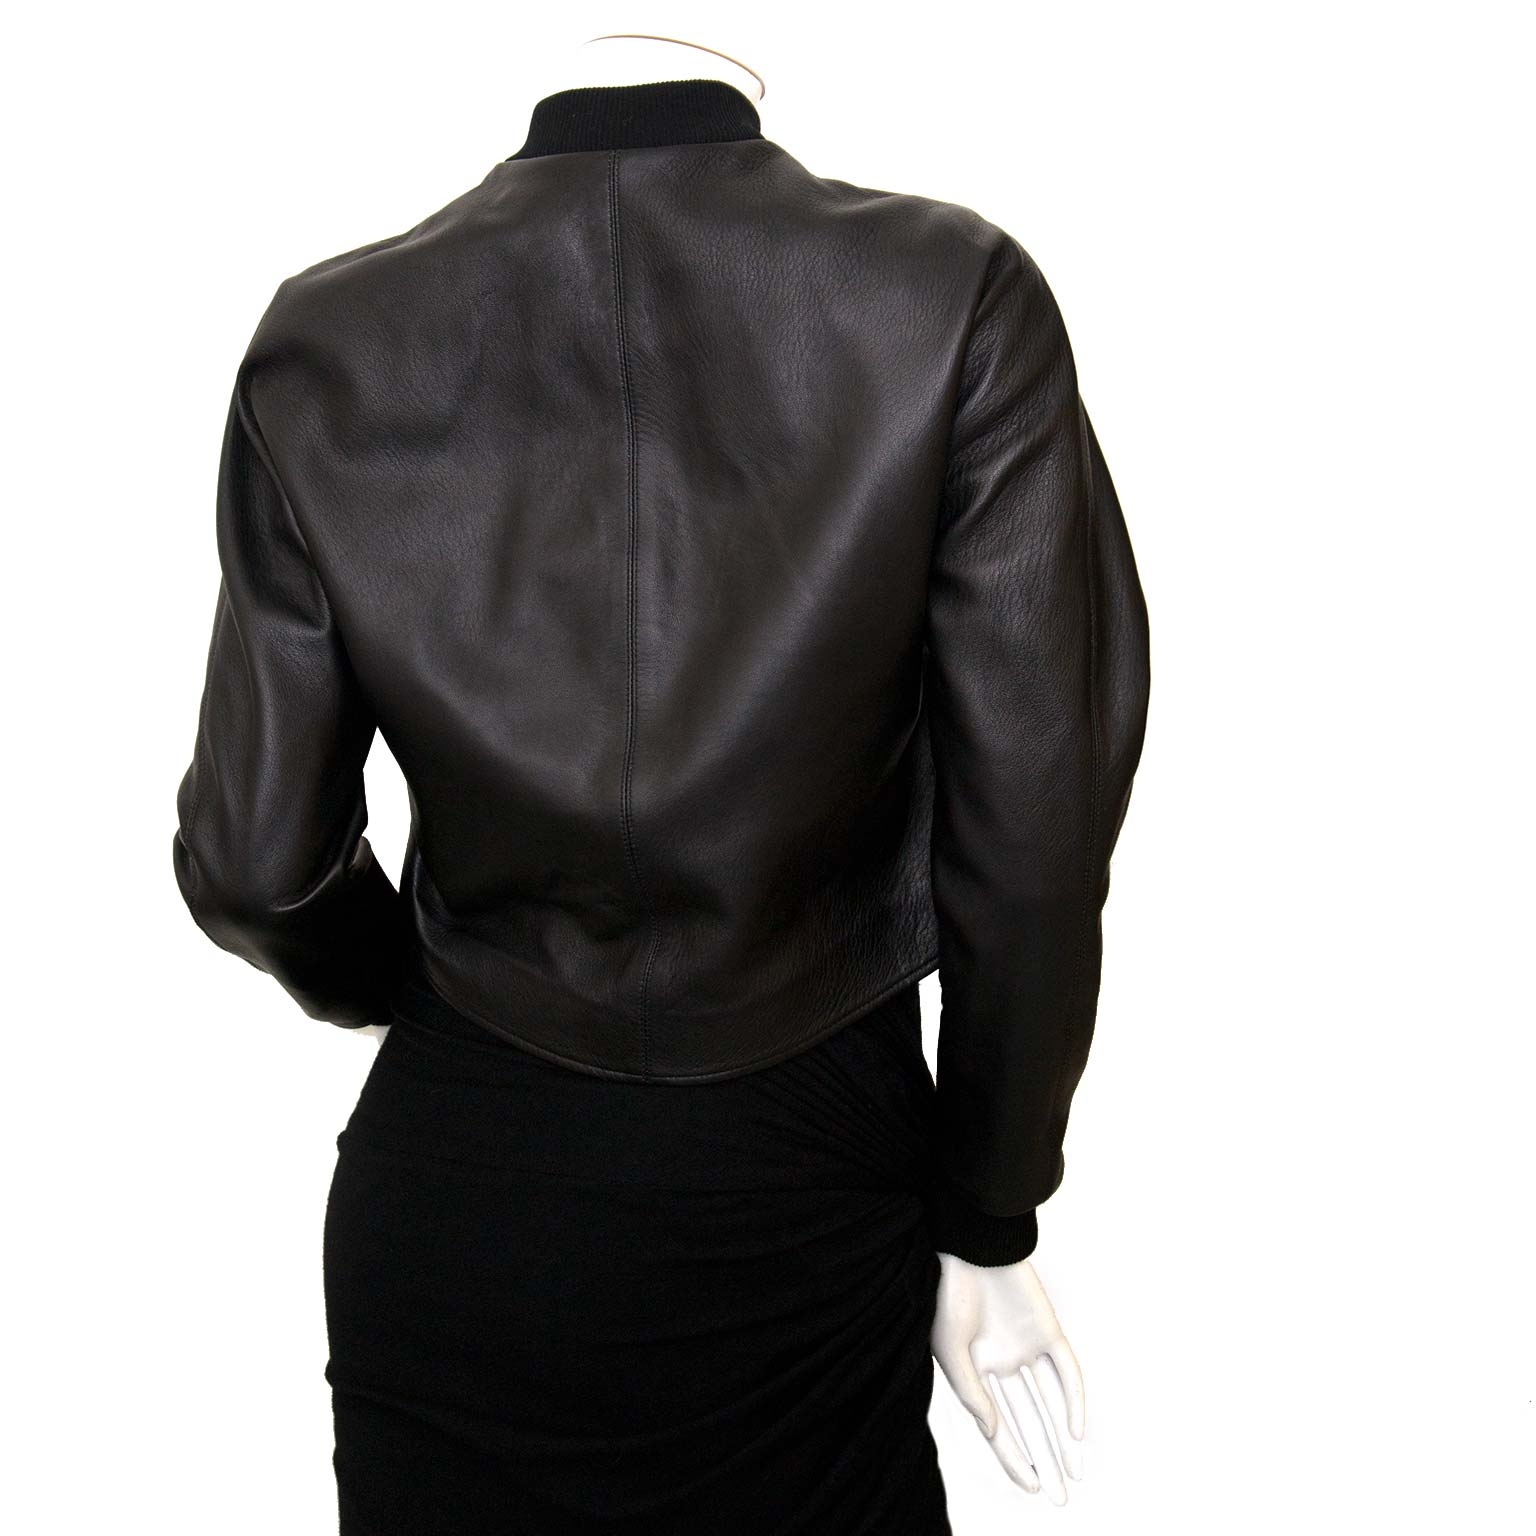 buy Balenciaga Black Leather Bomber Jacket at labellov and pays save online